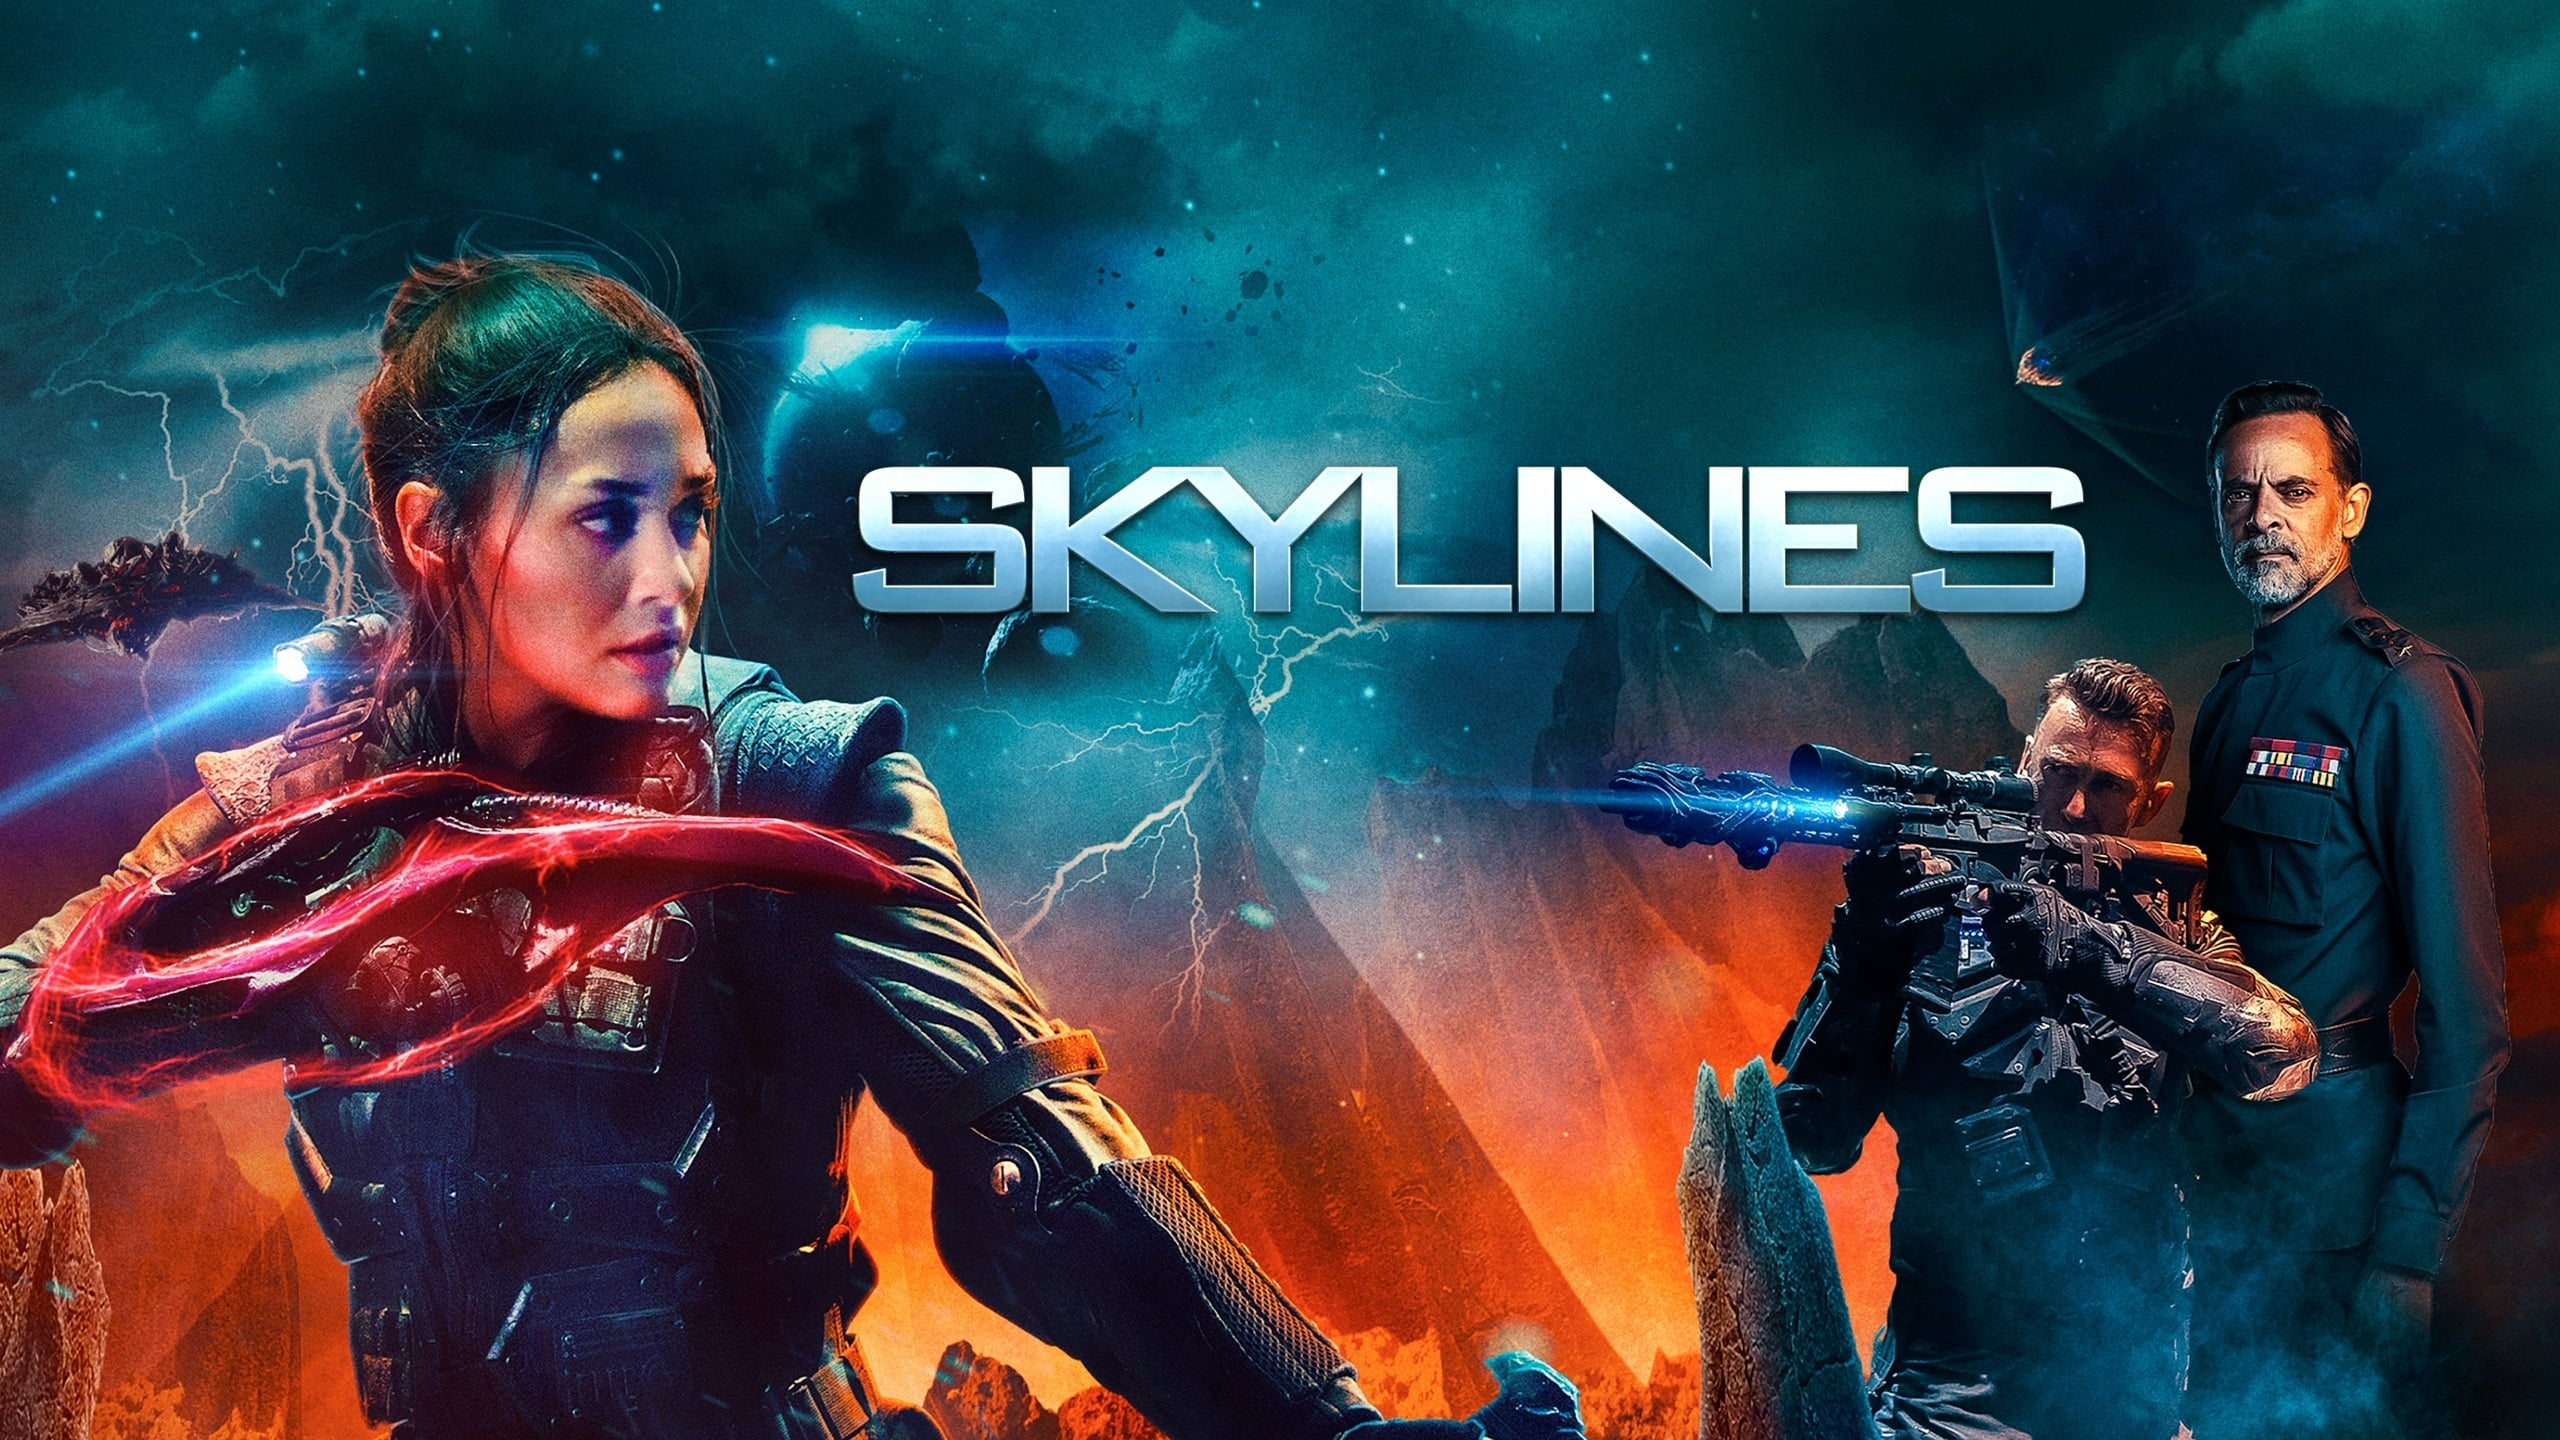 Watch Skylines (2020) Full Movie Online Free | Stream Free Movies & TV Shows